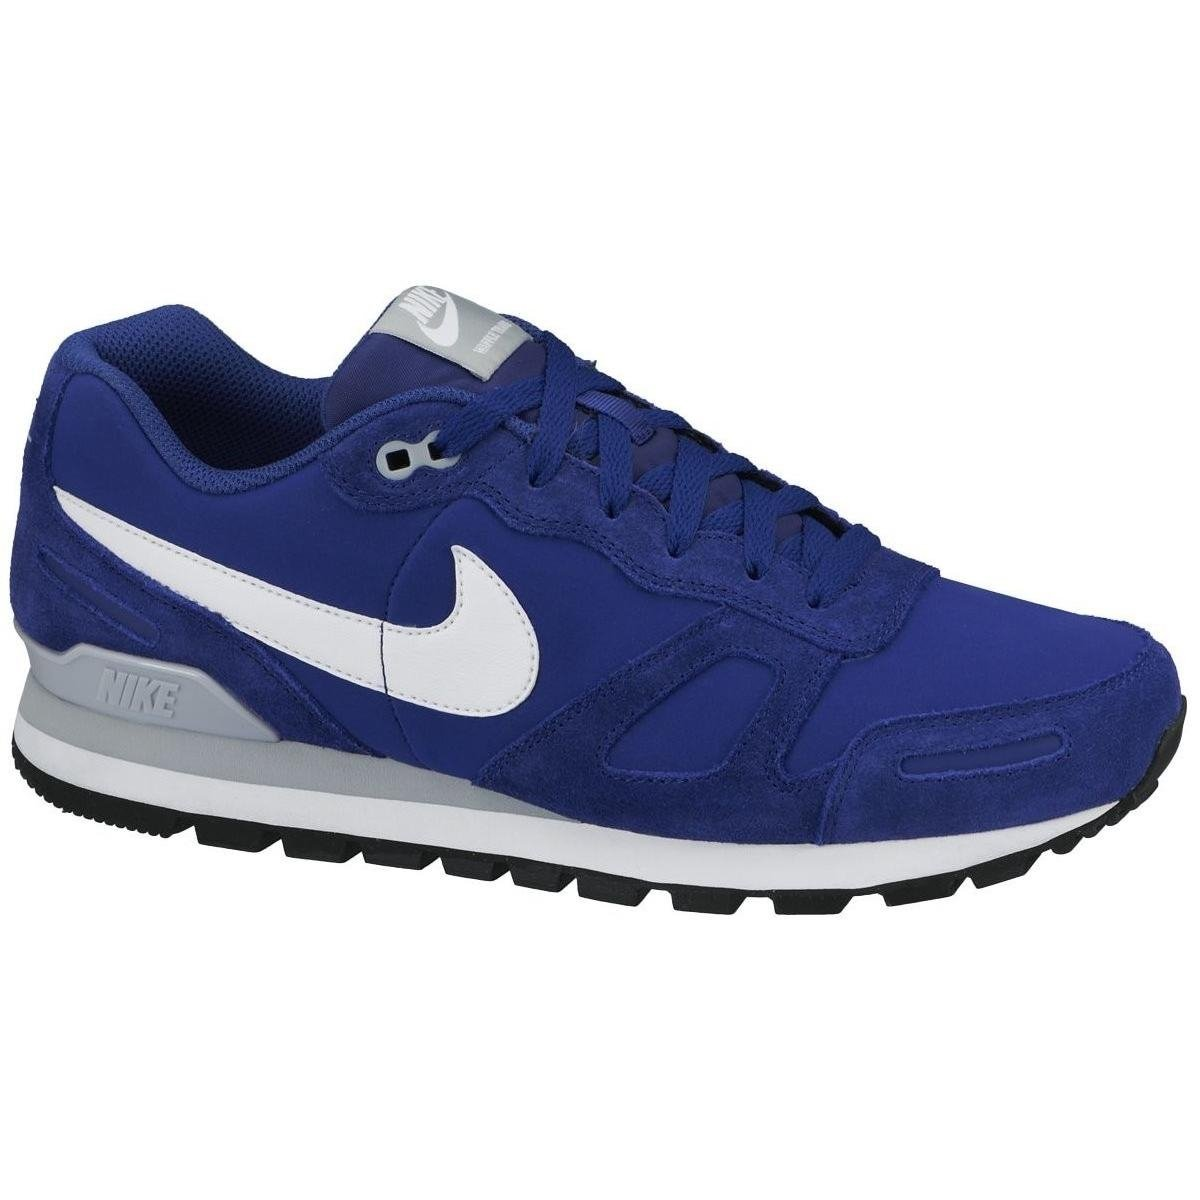 release date: b68d3 481f6 Nike Men's Air Waffle Trainer Leather Footwear-Blue/White/Grey, Size 7.5,  UK: Amazon.co.uk: Sports & Outdoors